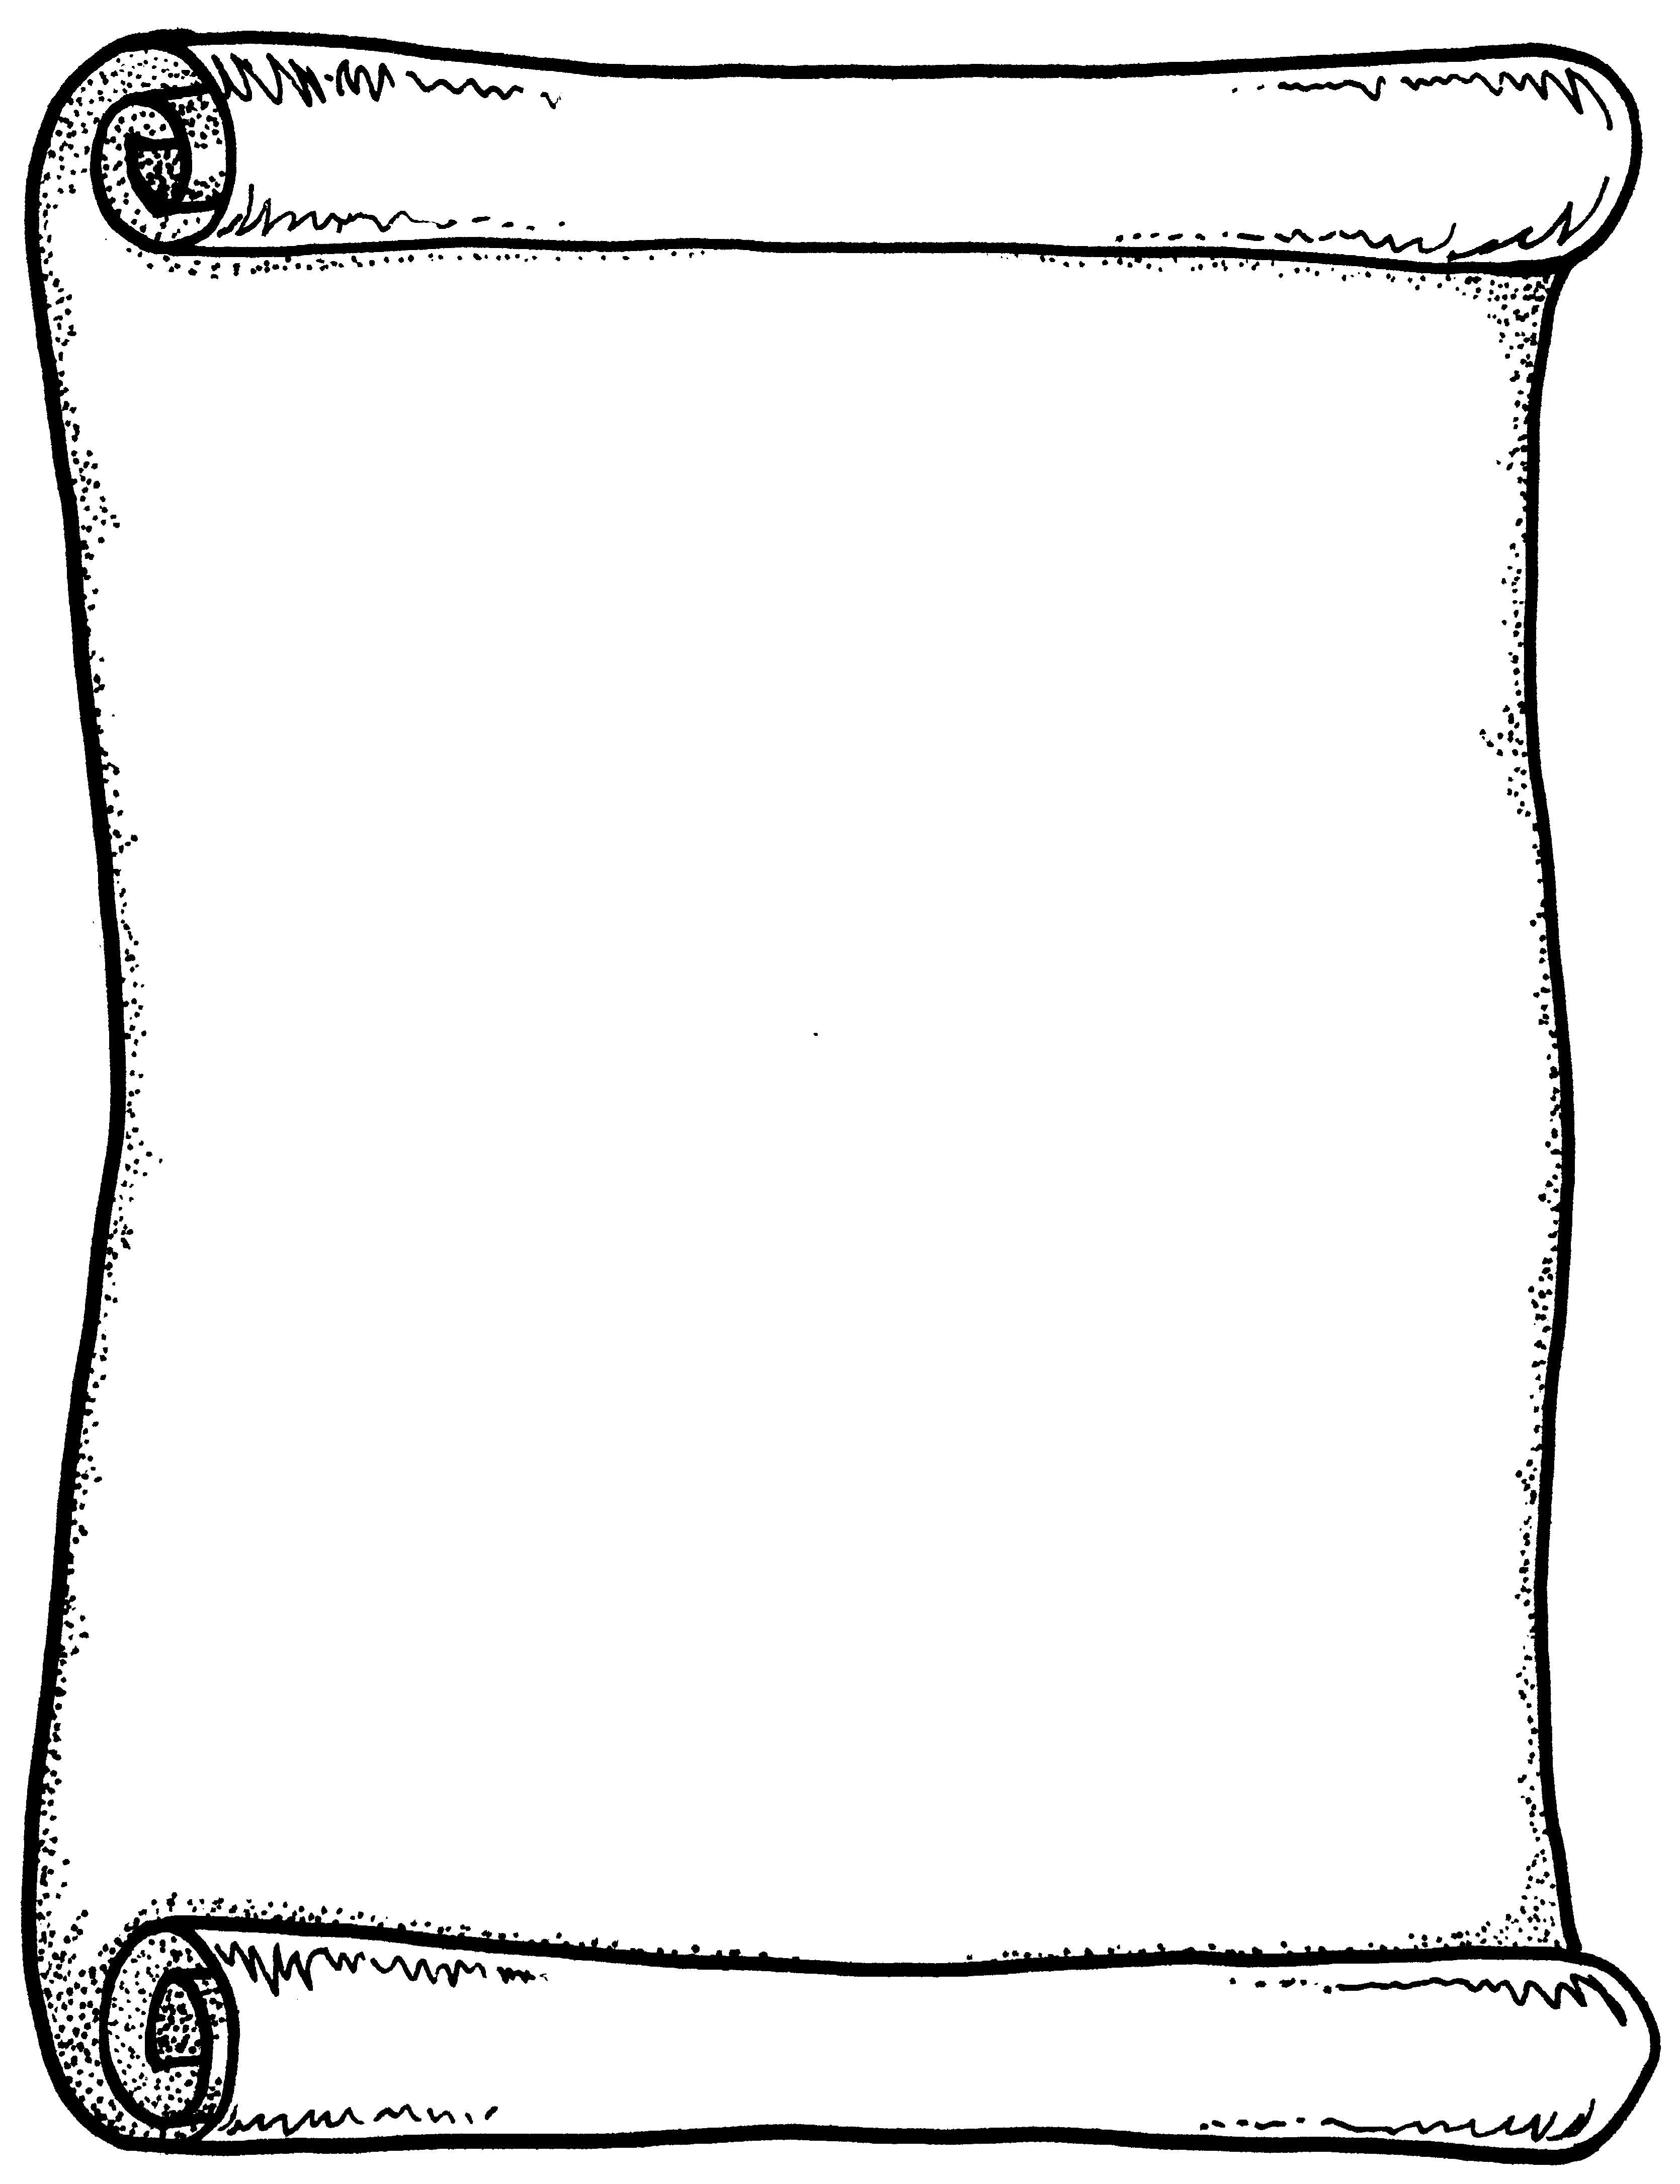 Scroll clipart template, Scroll template Transparent FREE.